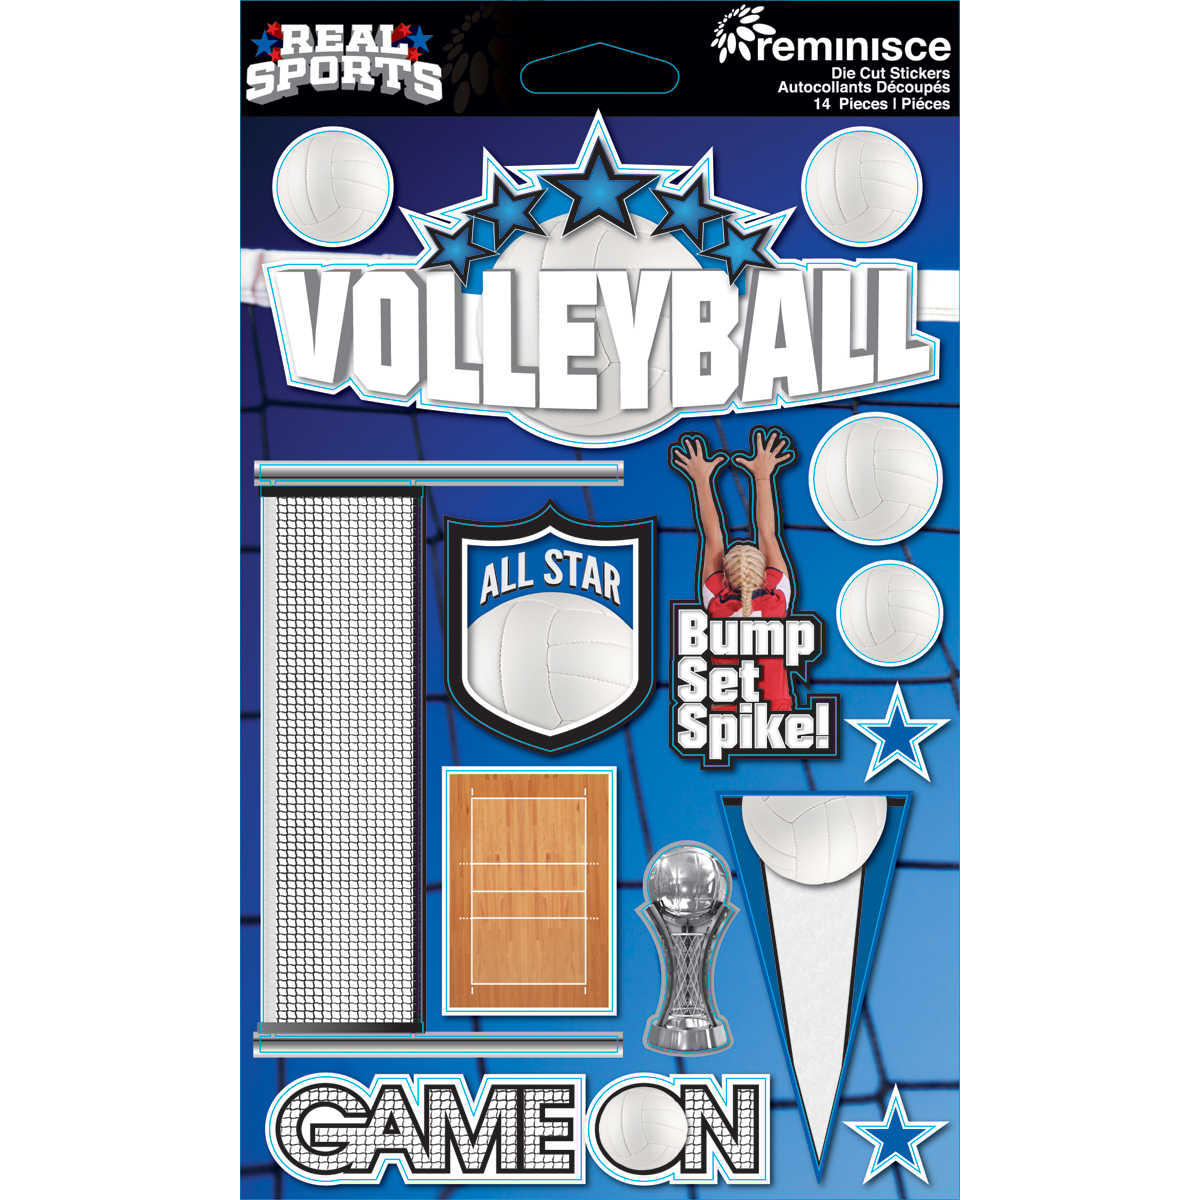 REMINISCE REAL SPORTS VOLLEYBALL DIMENSIONAL 3D SCRAPBOOK STICKERS